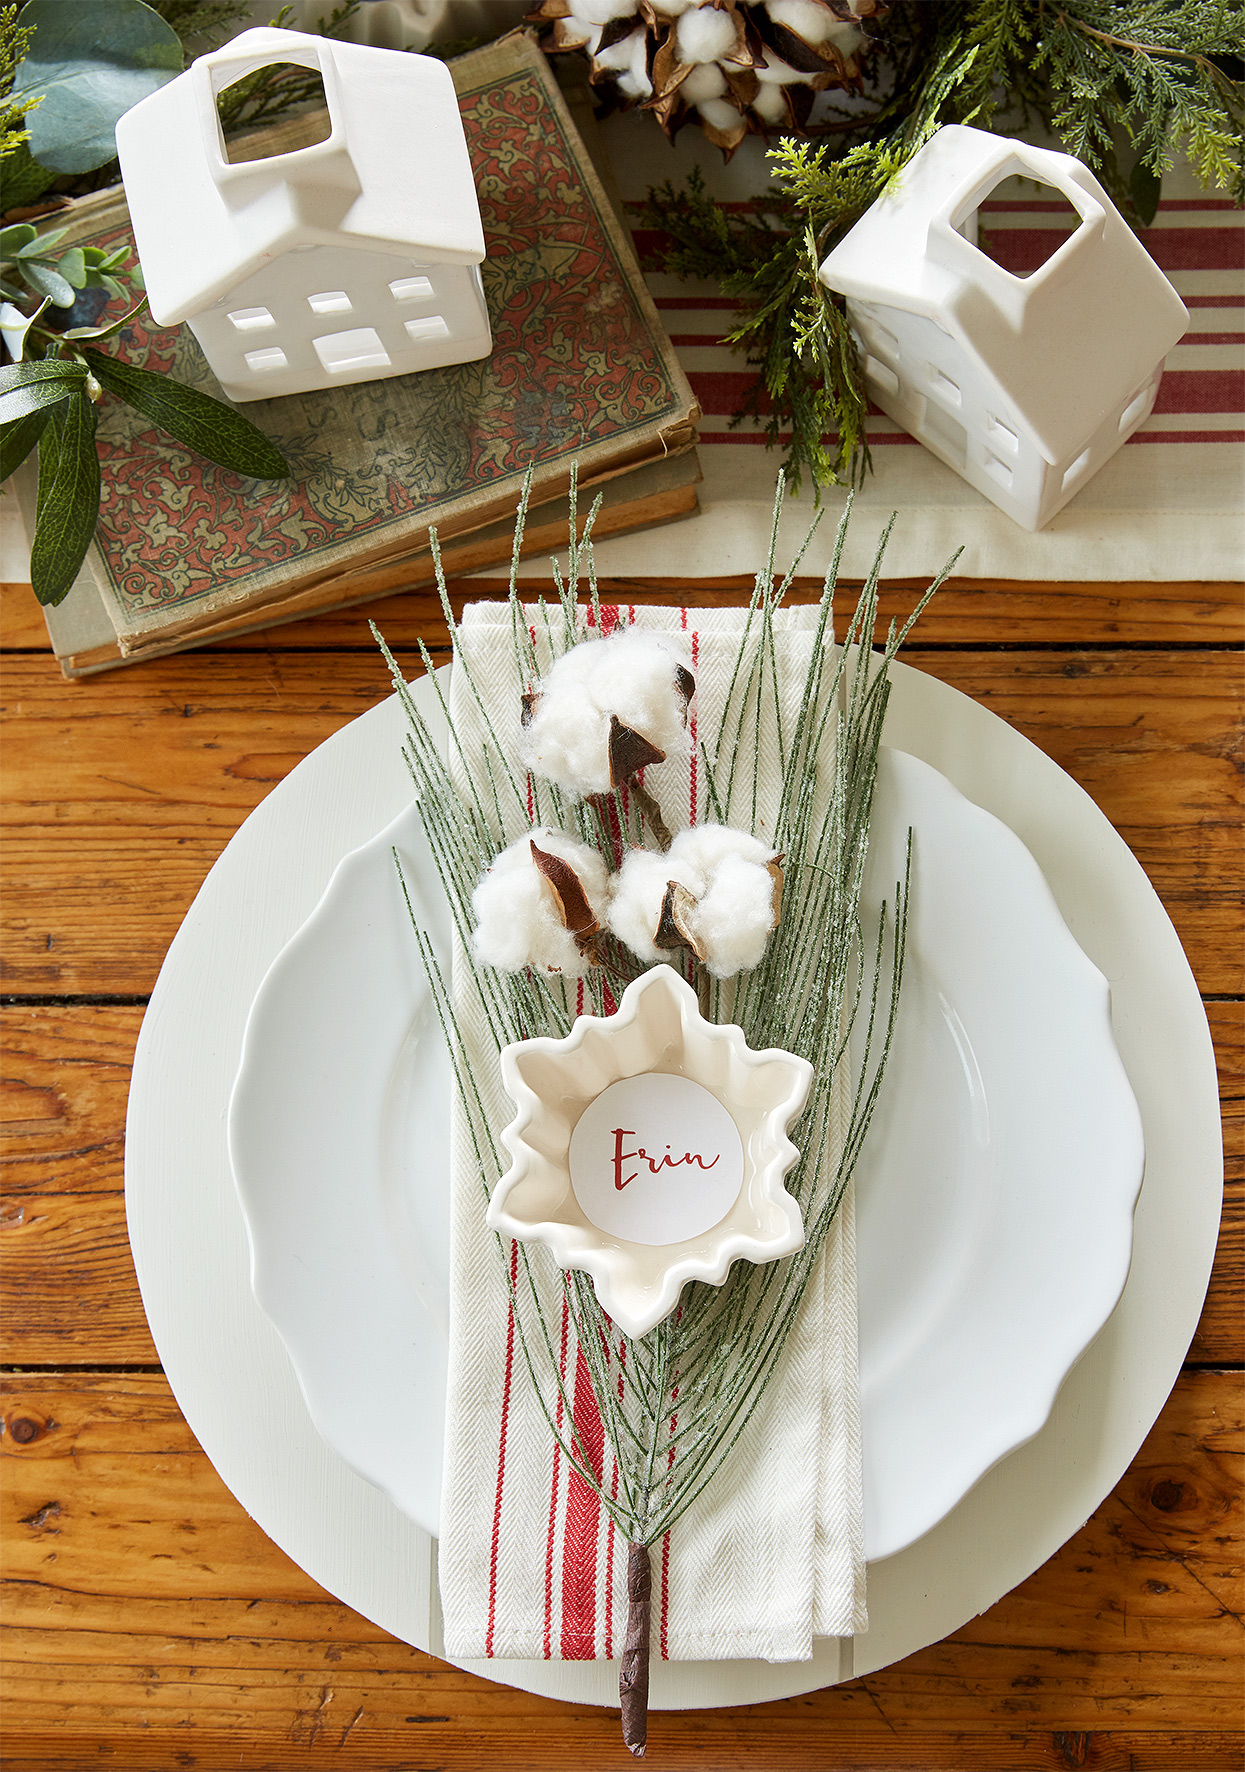 personalized Christmas place setting with snowflake dish